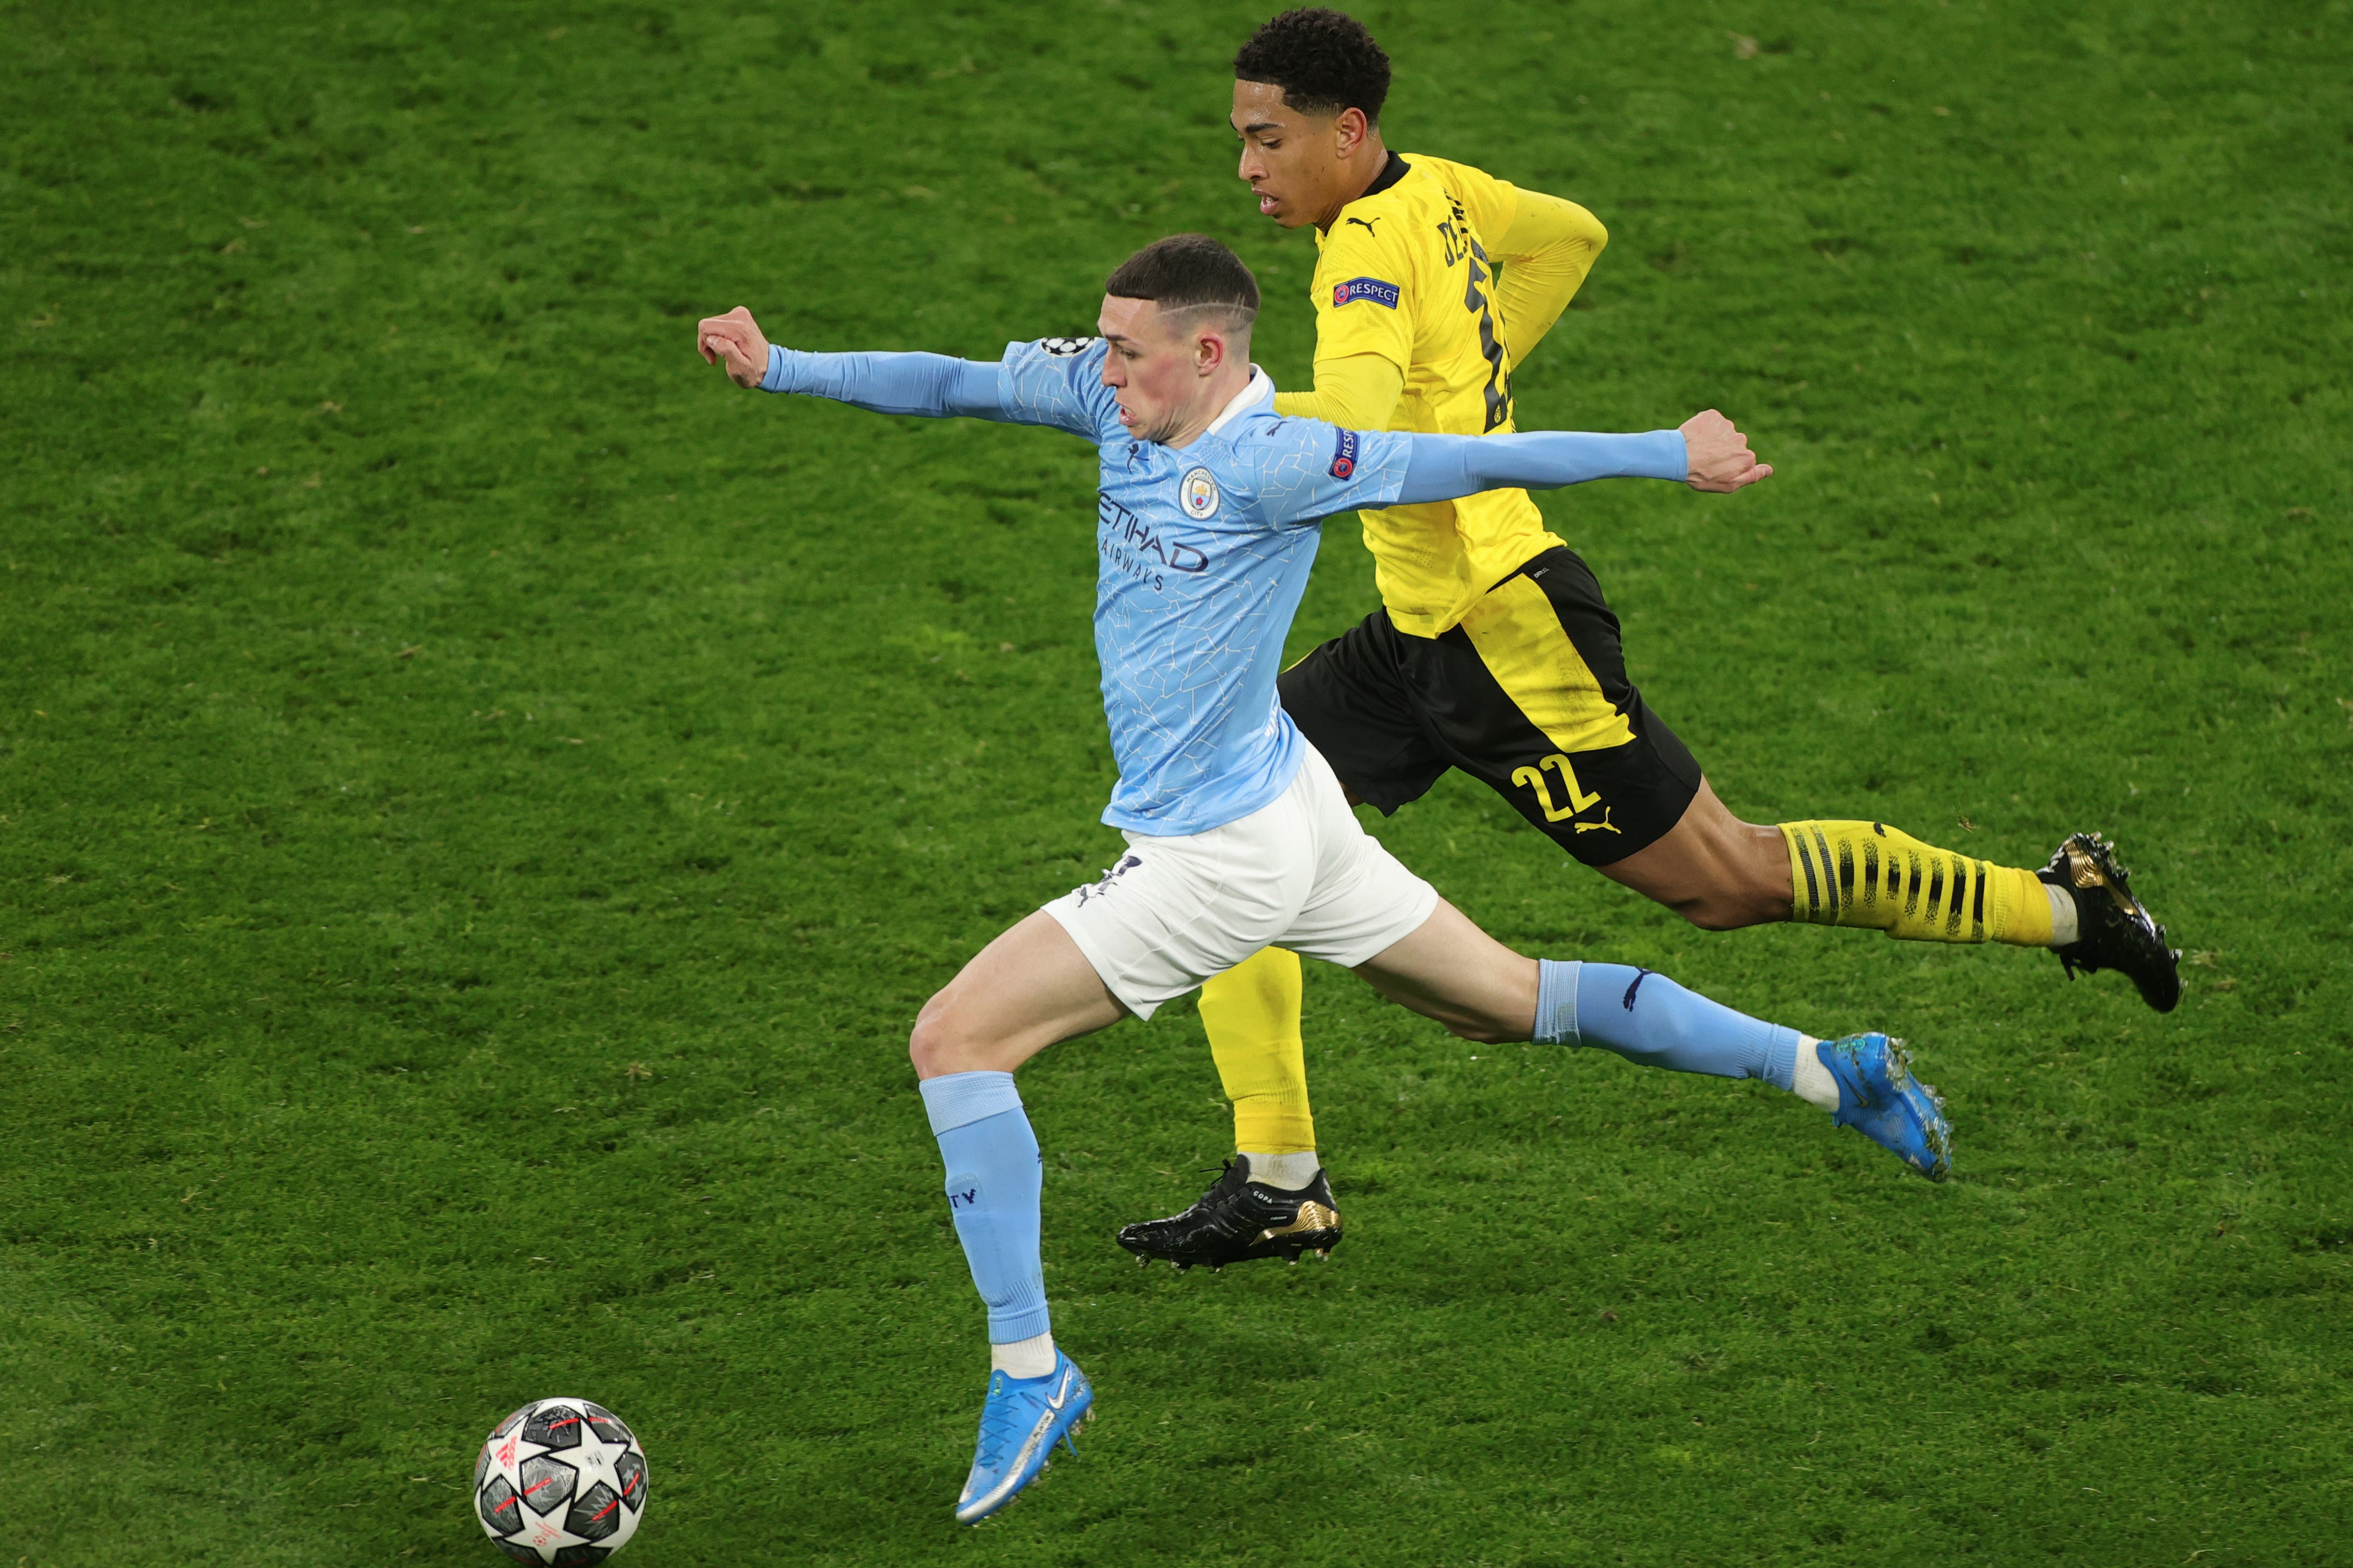 <p>Jude Bellingham and Phil Foden both impressed in the Champions League quarter-finals</p>